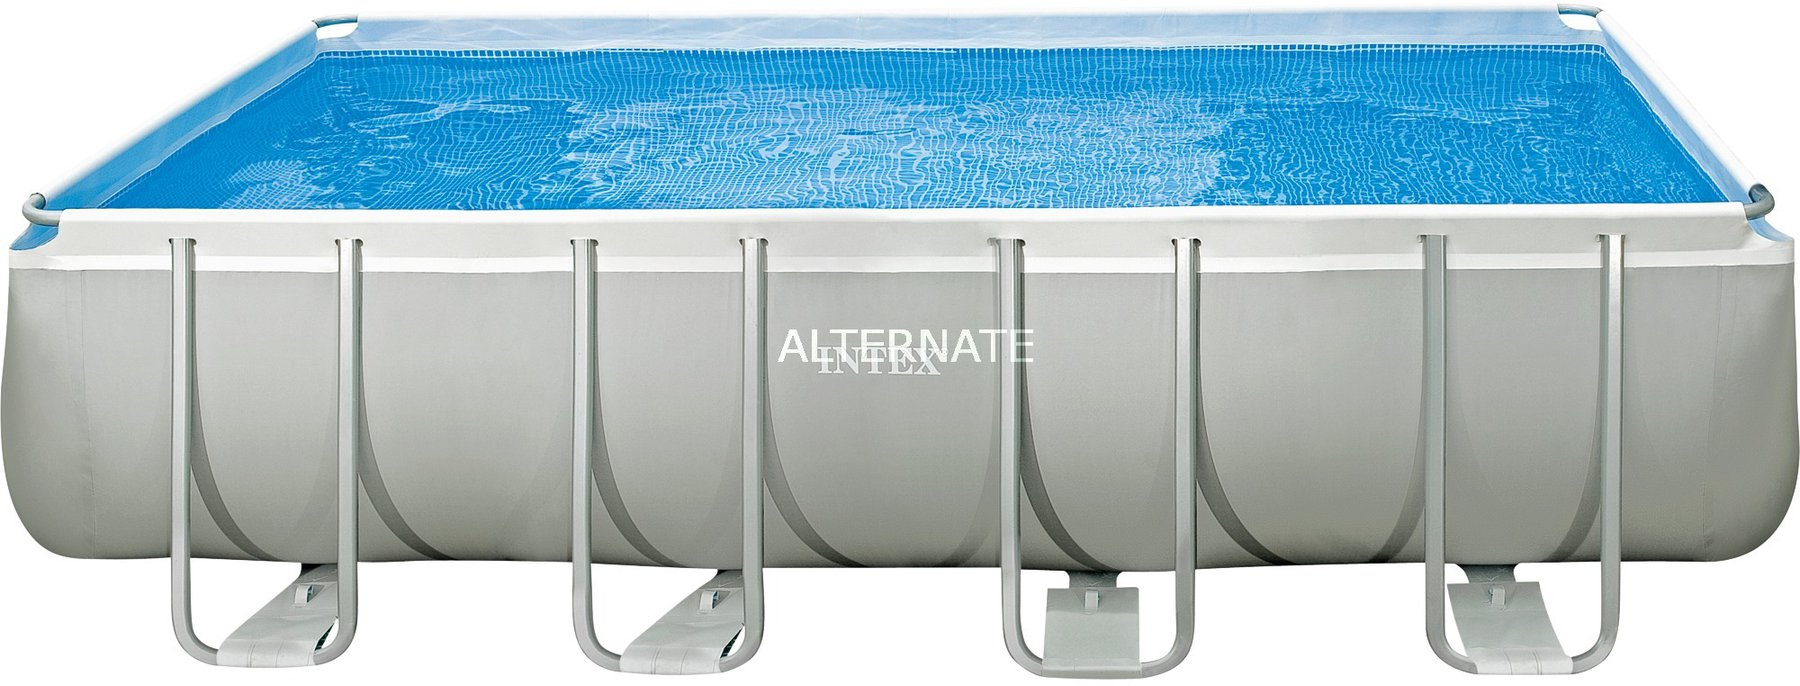 Pool Filterpumpe Lautstärke Intex Pools Ultra Frame Pool Quadra 549 X 274 X 132 Cm Mit Sandfilter Komplett Set 28352